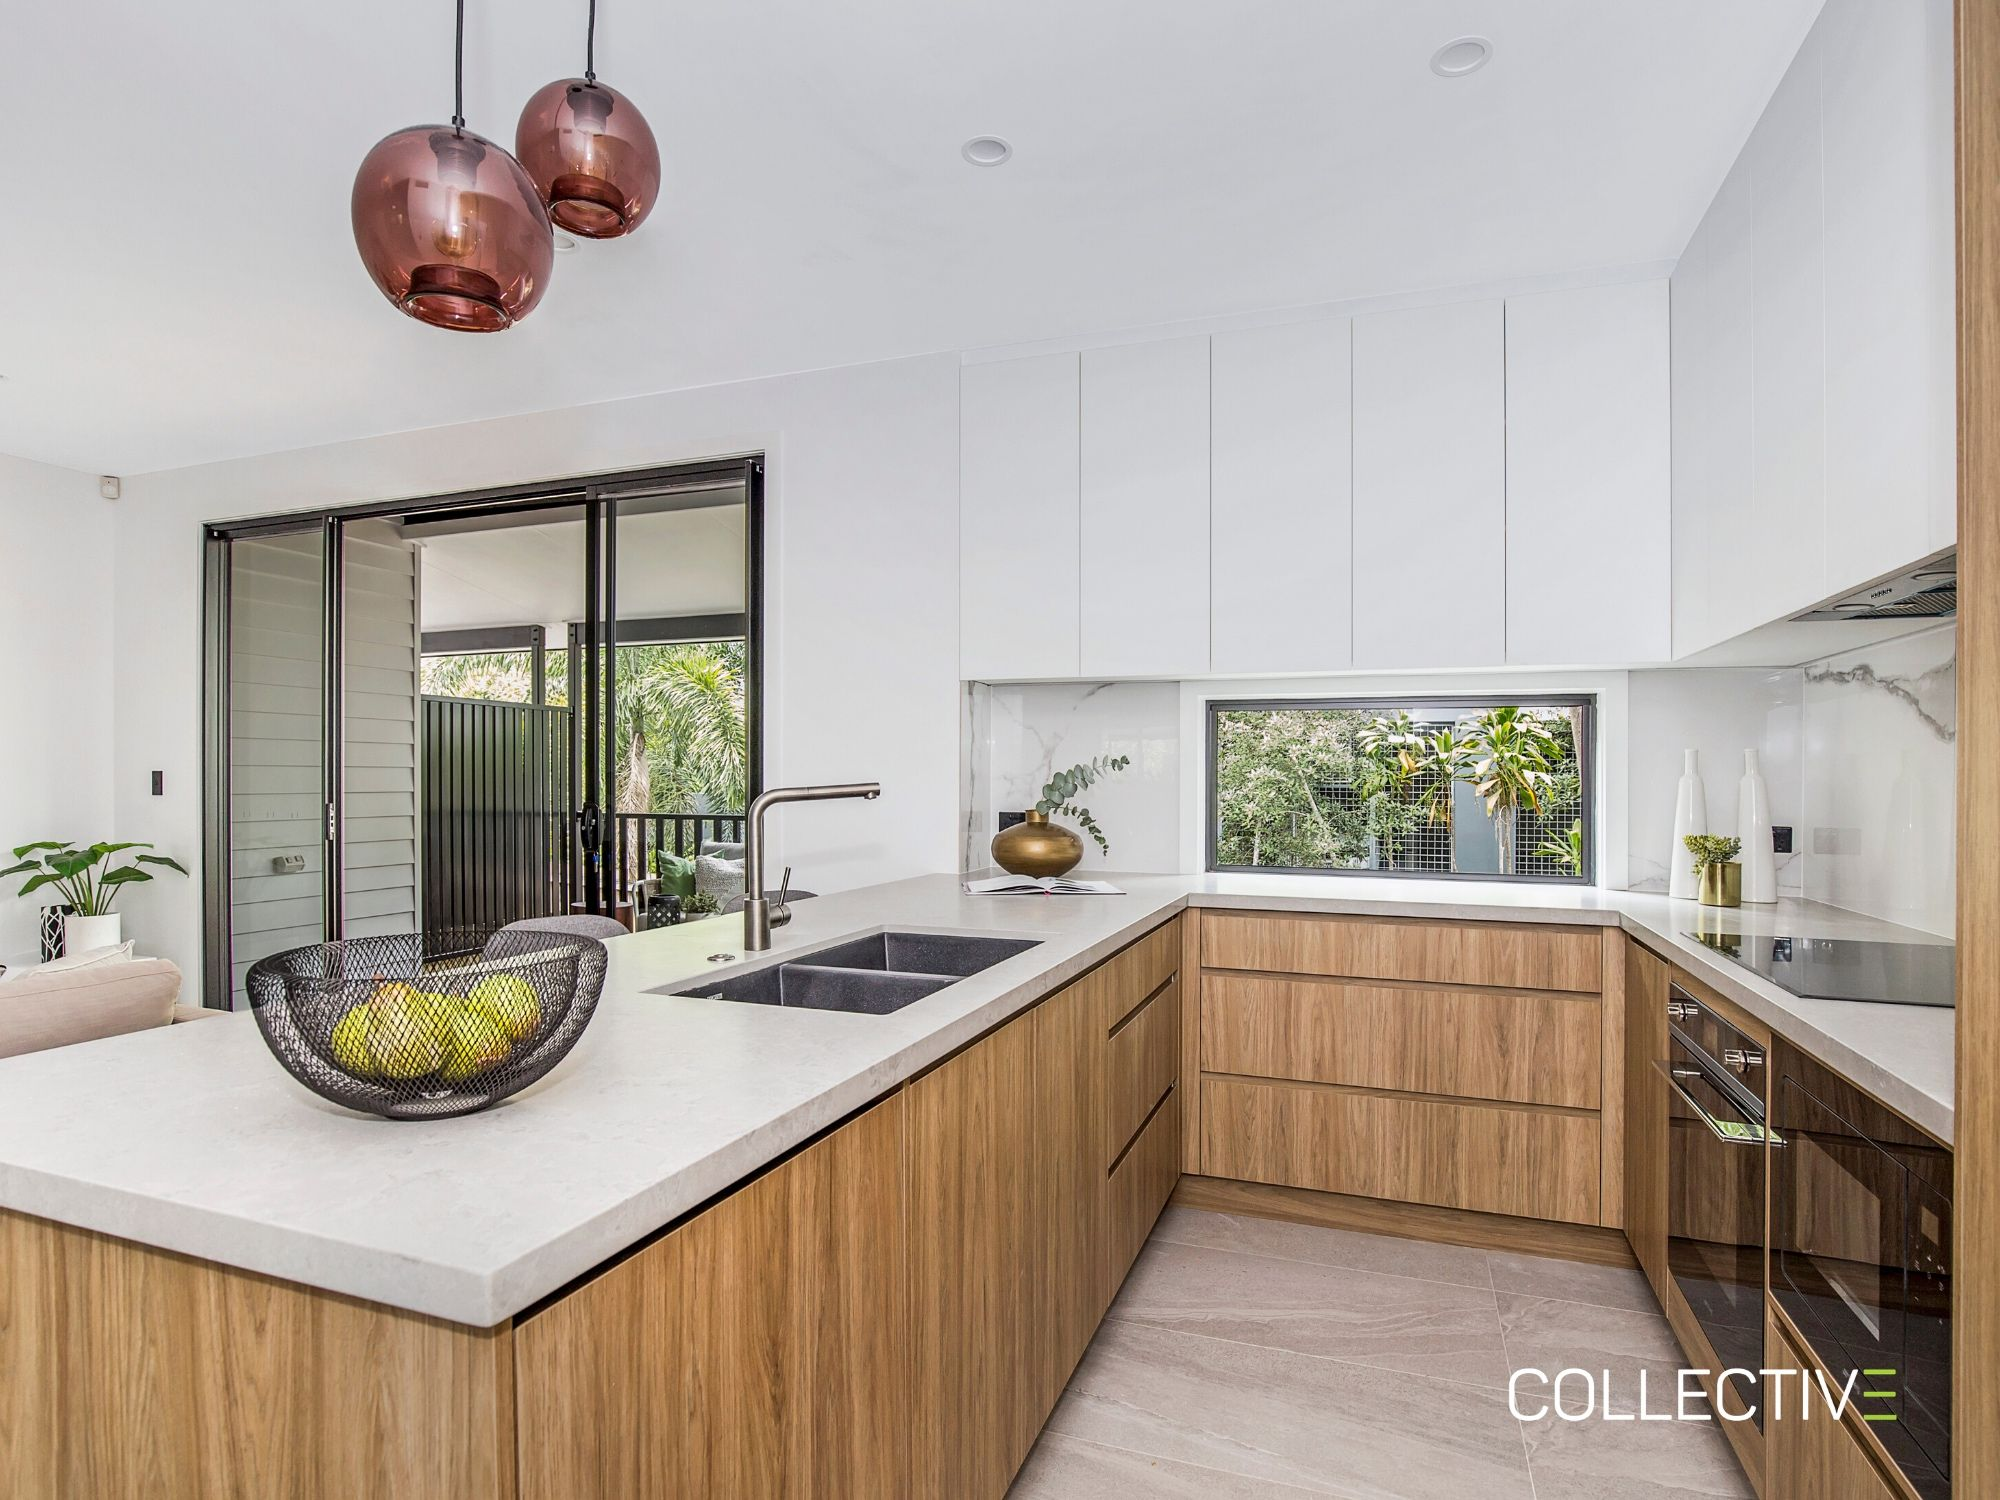 1, 3 and 5 44 Beth Eden Terrace Ashgrove 4060